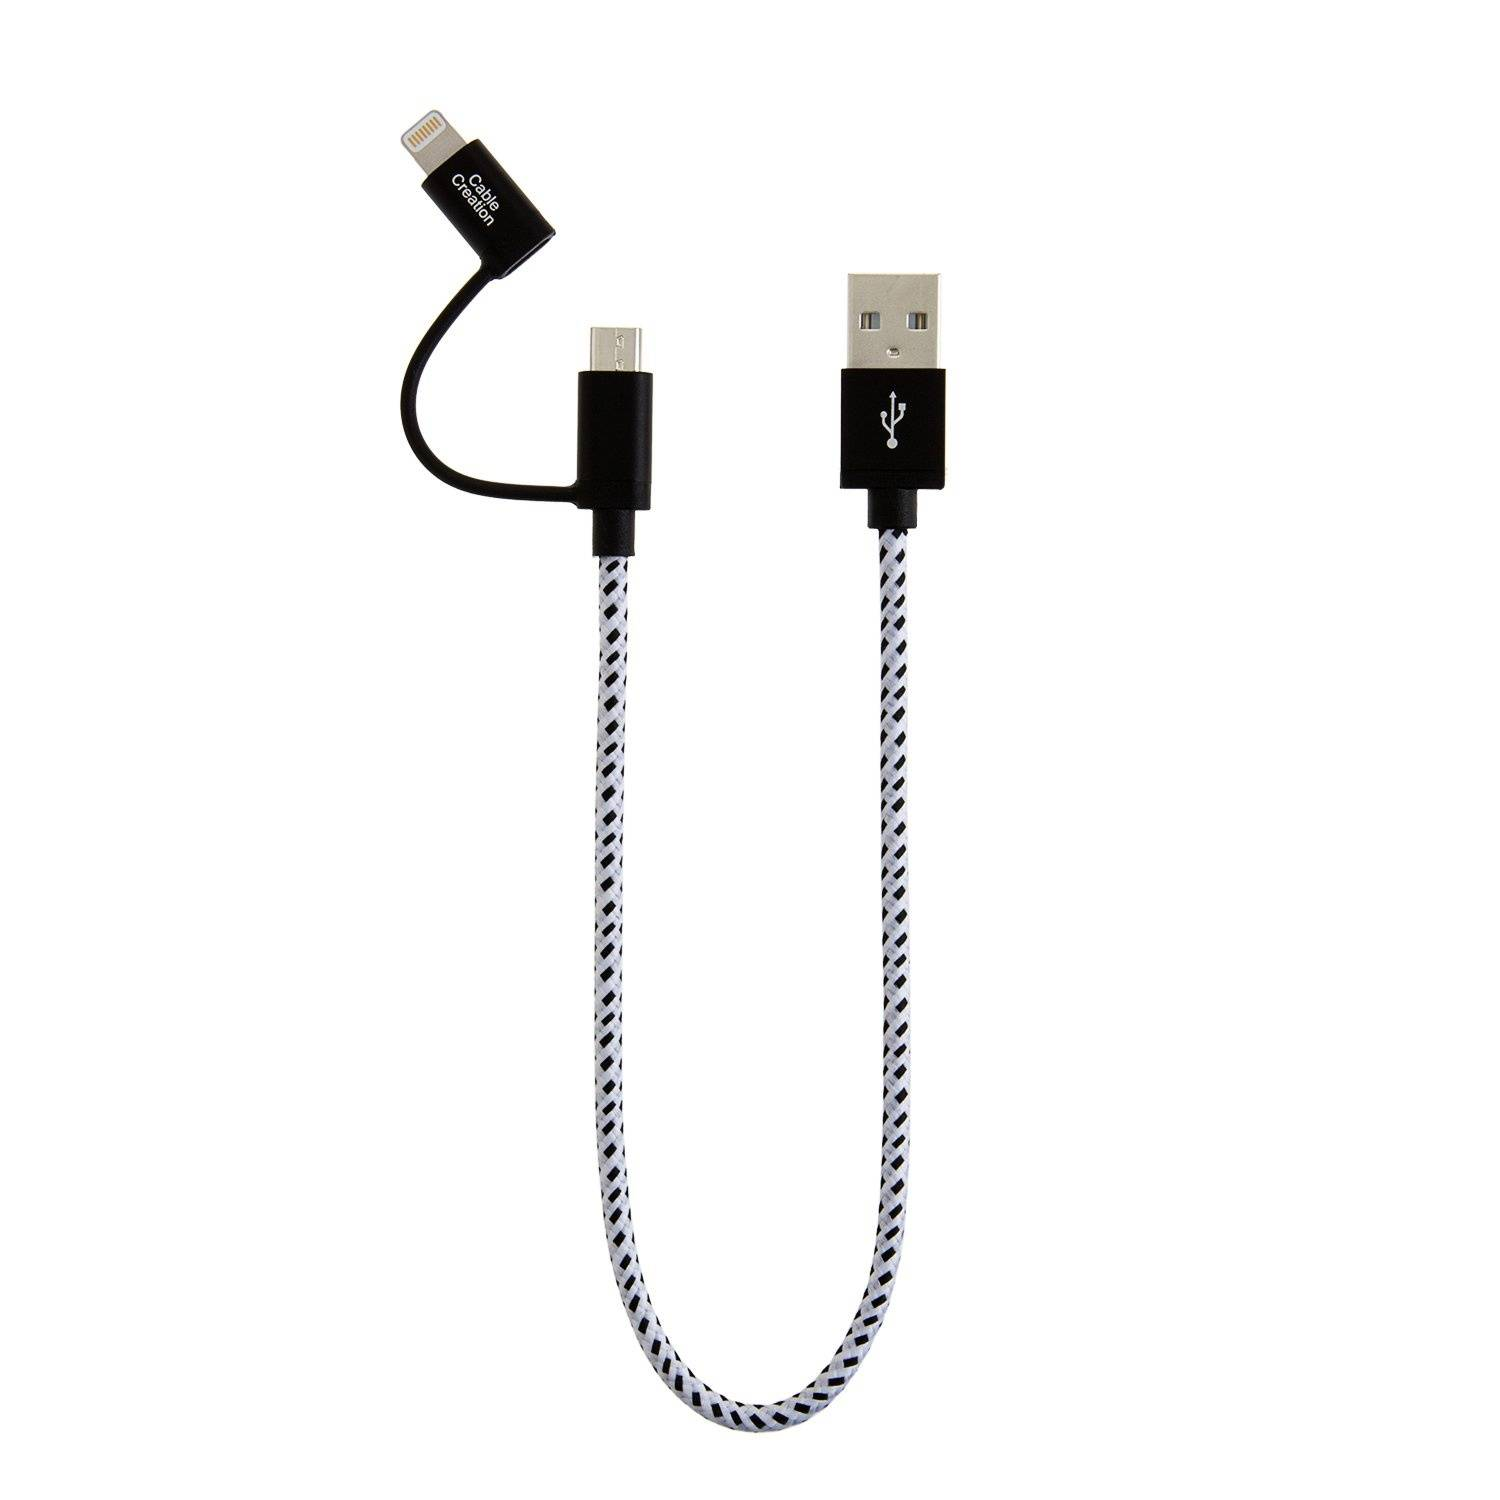 Hot sale Iphone Cable - 2-in-1 Short Lightning and Micro USB to USB Data Sync Charge Cable 0.8Feet / 0.25Meter, # CC0213 – CableCreation